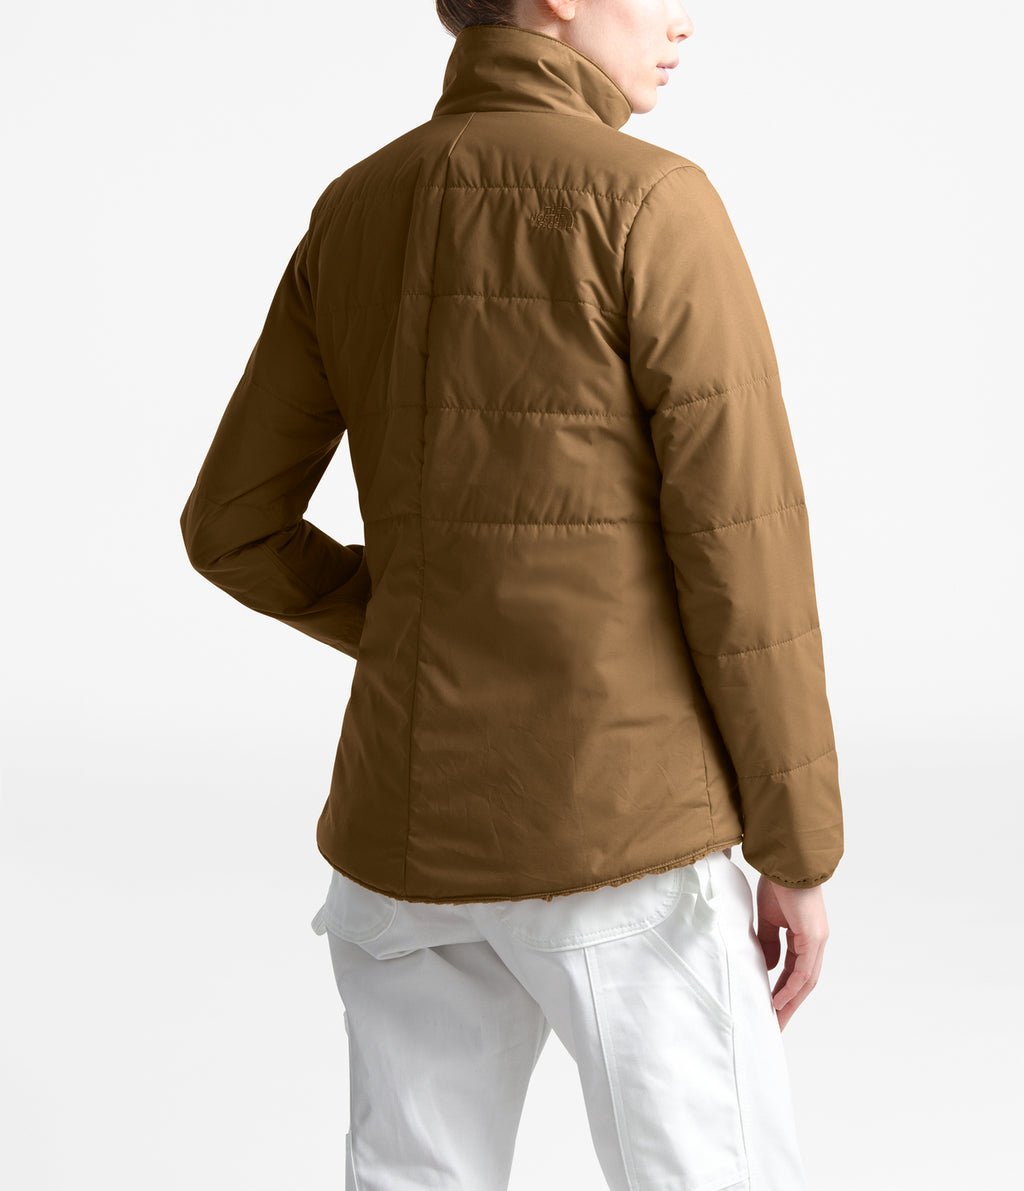 MERRIEWOOD REVERSIBLE JACKET